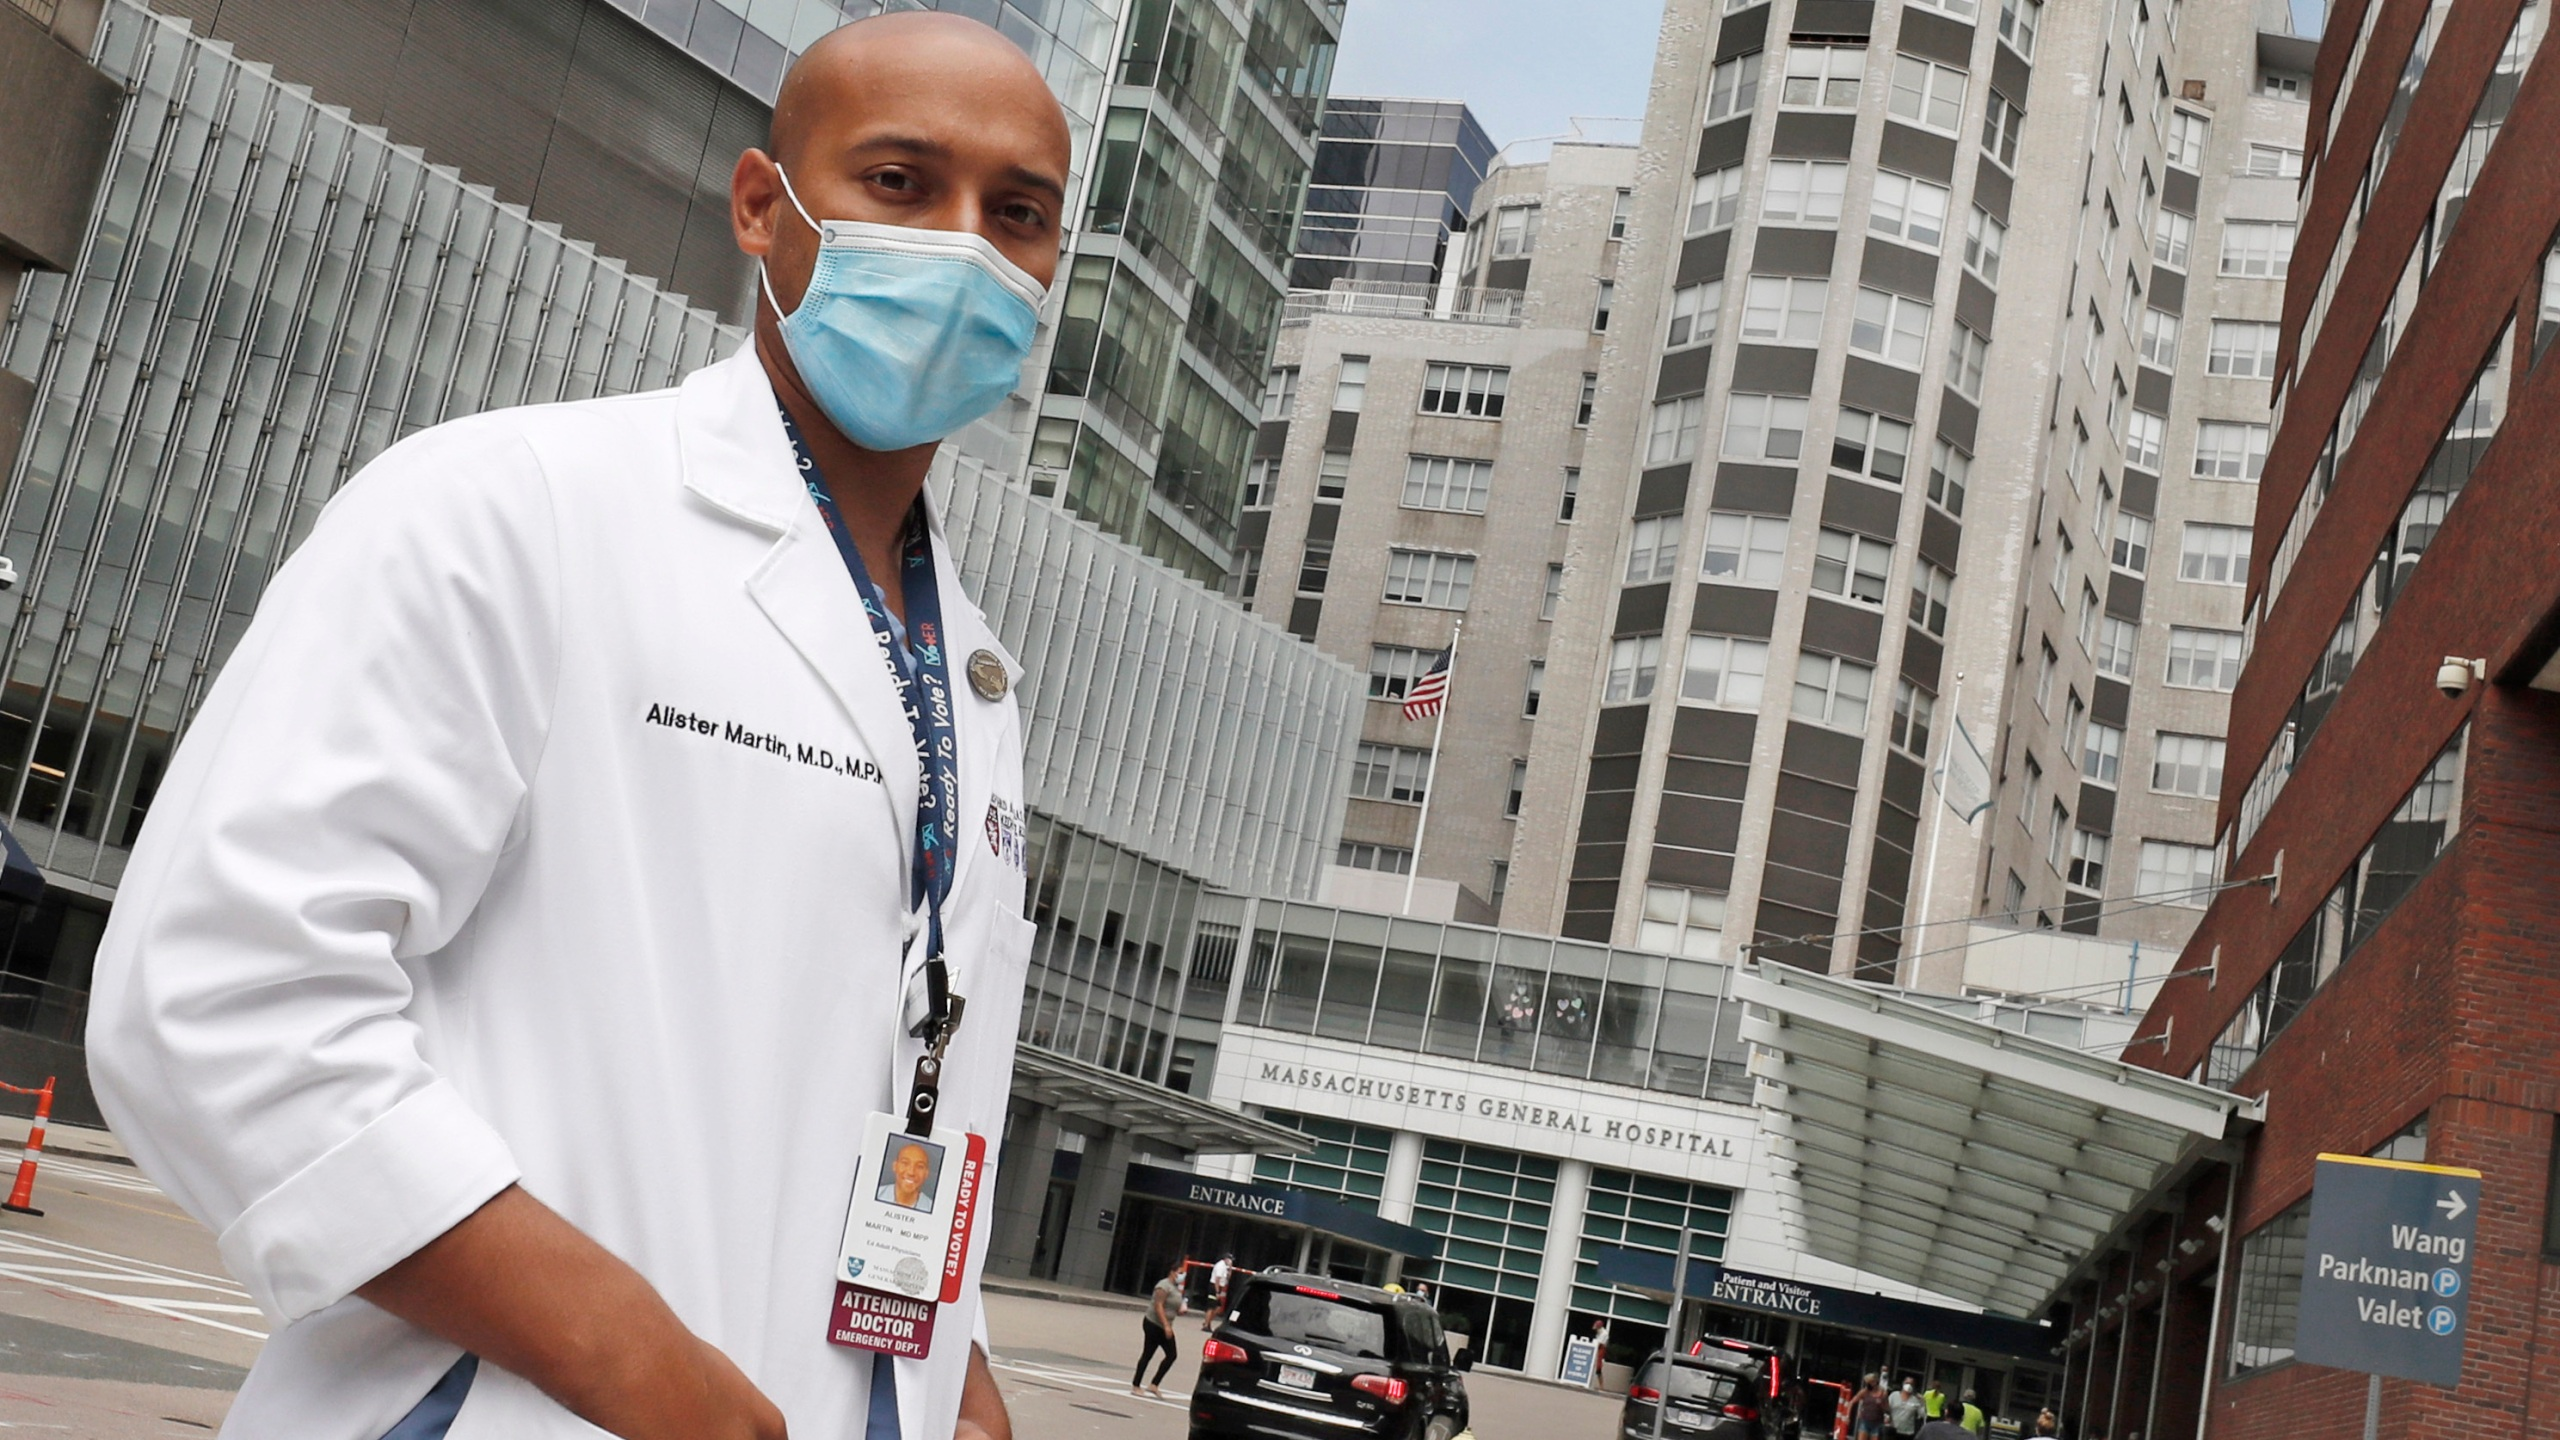 "Alister Martin, an emergency room doctor at Massachusetts General Hospital, poses outside the hospital, Friday, Aug. 7, 2020, in Boston. Martin founded the organization ""VotER"" to provide medical professionals voter registration resources for patients who are unregistered voters. (AP Photo/Charles Krupa)"